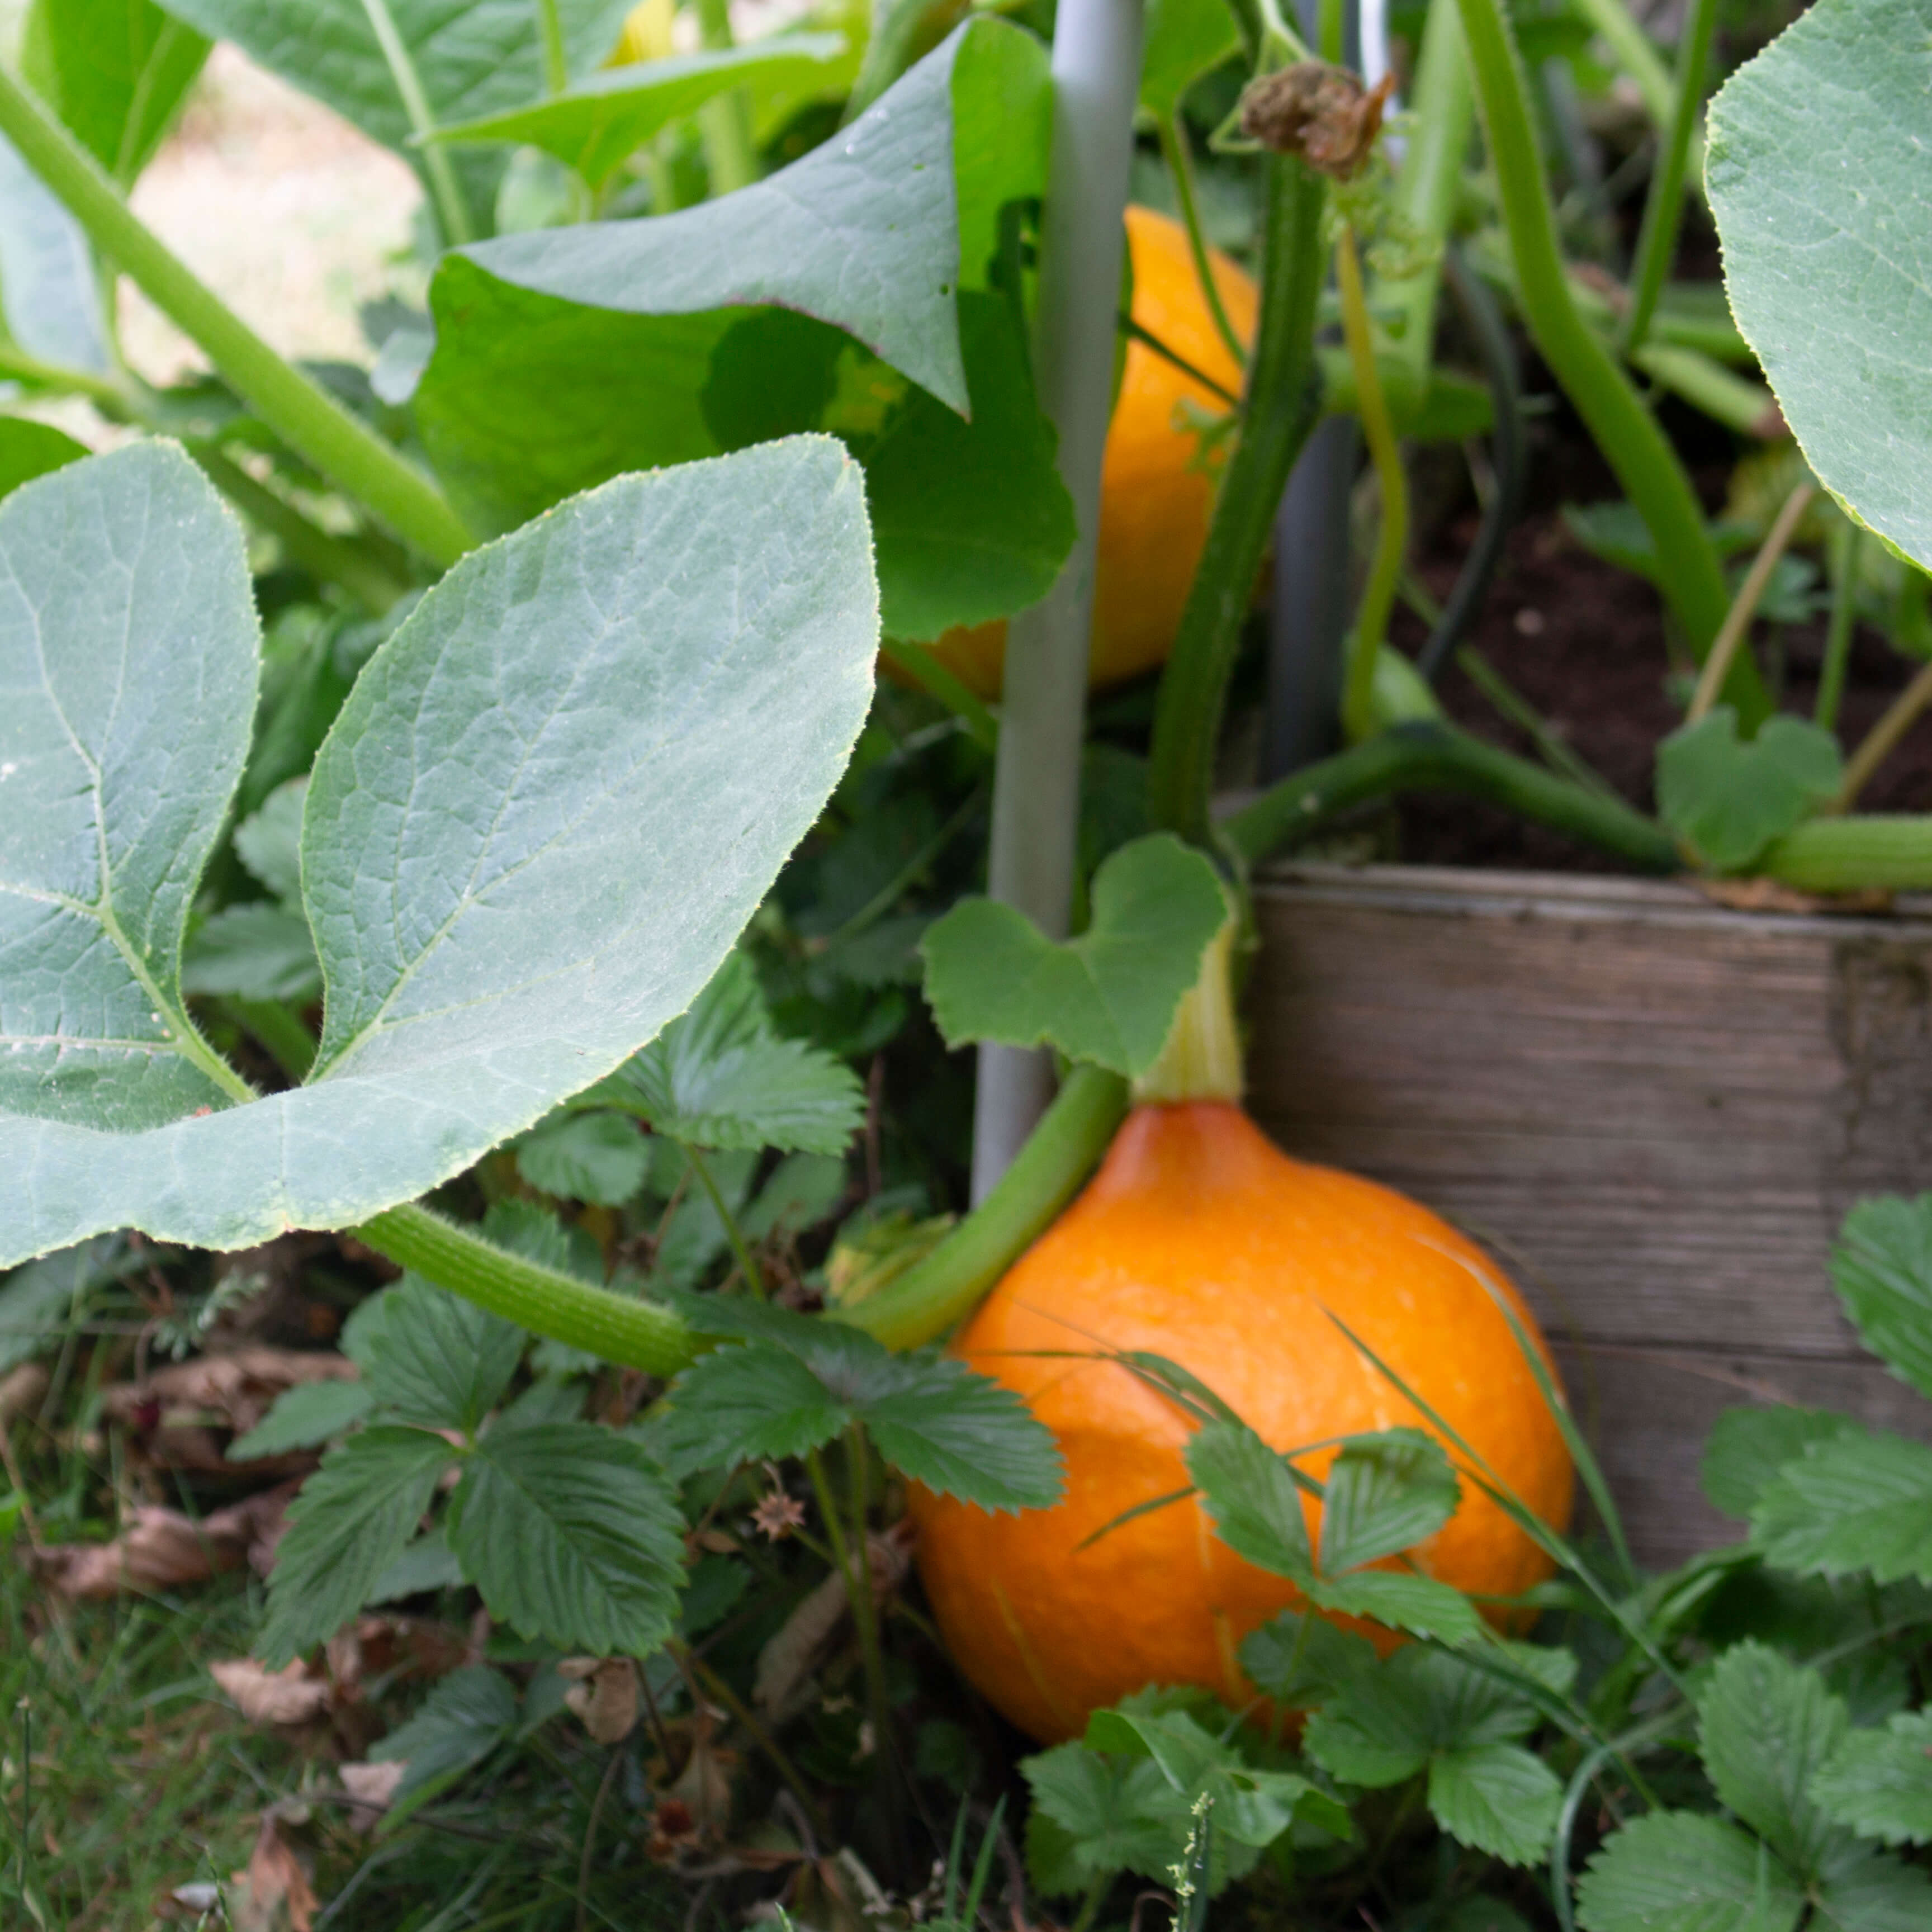 a small orange pumpkin in a vegetable garden surrounded by the plant's leaves. Strawberry leaves in the foreground.